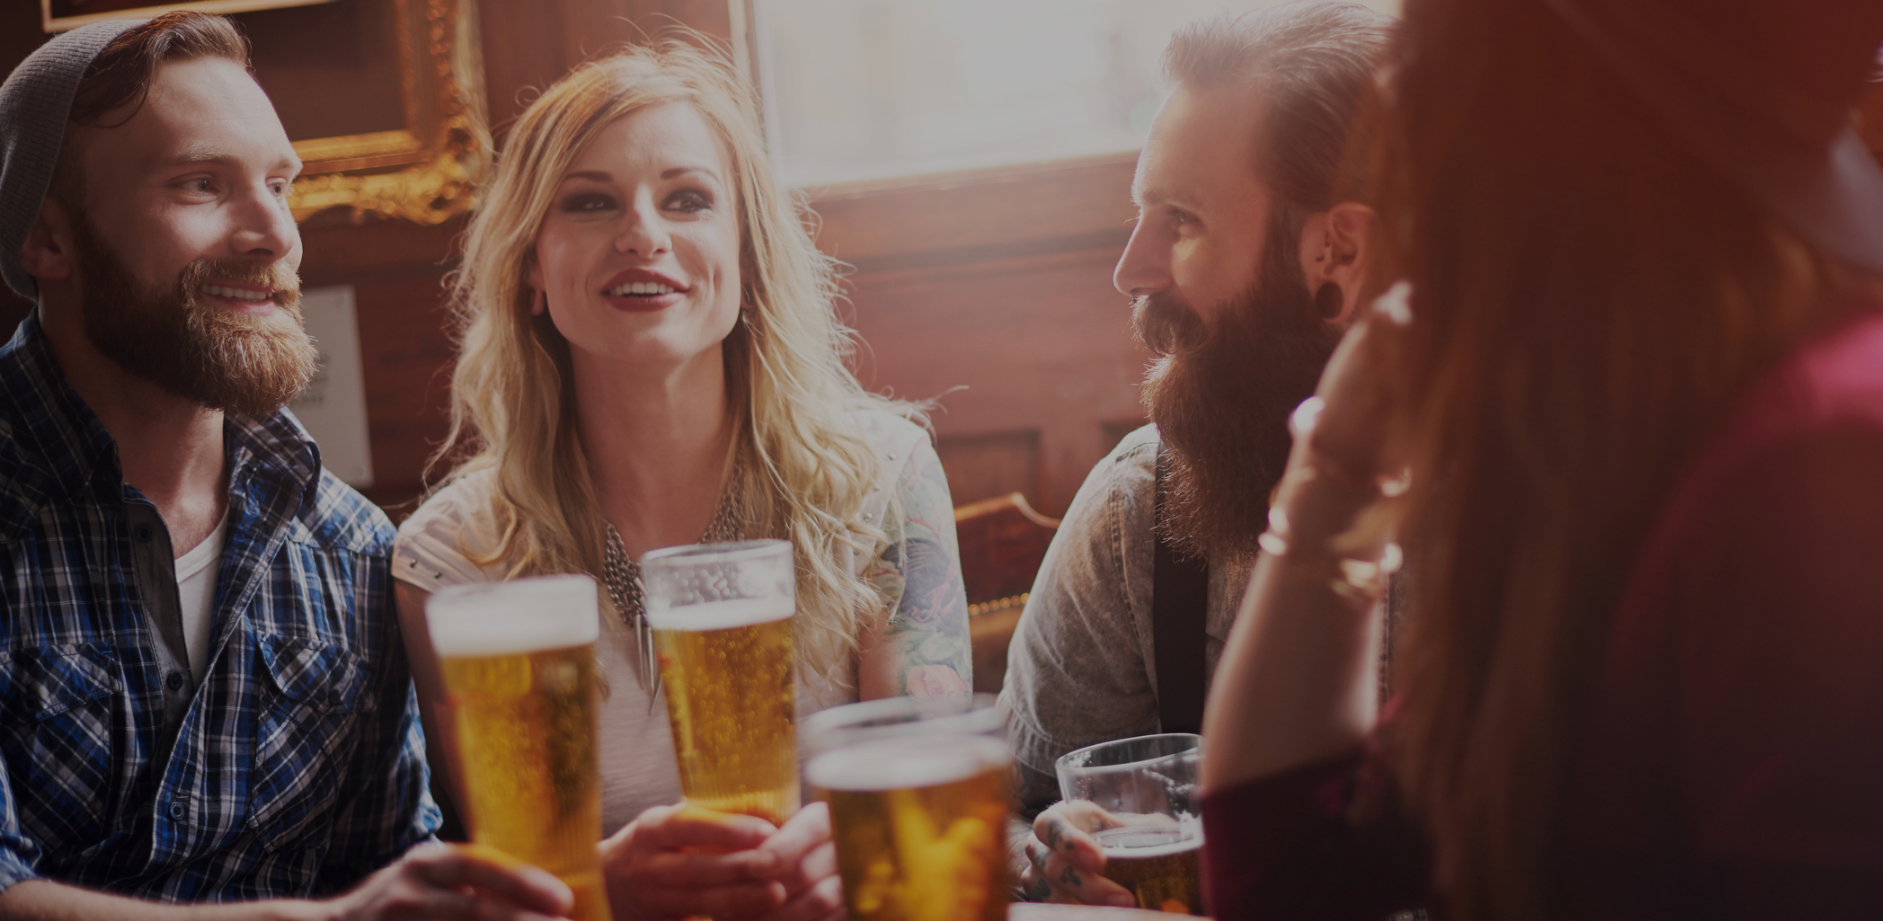 Follow these 10 tips to help ensure your trivia night is a success. -